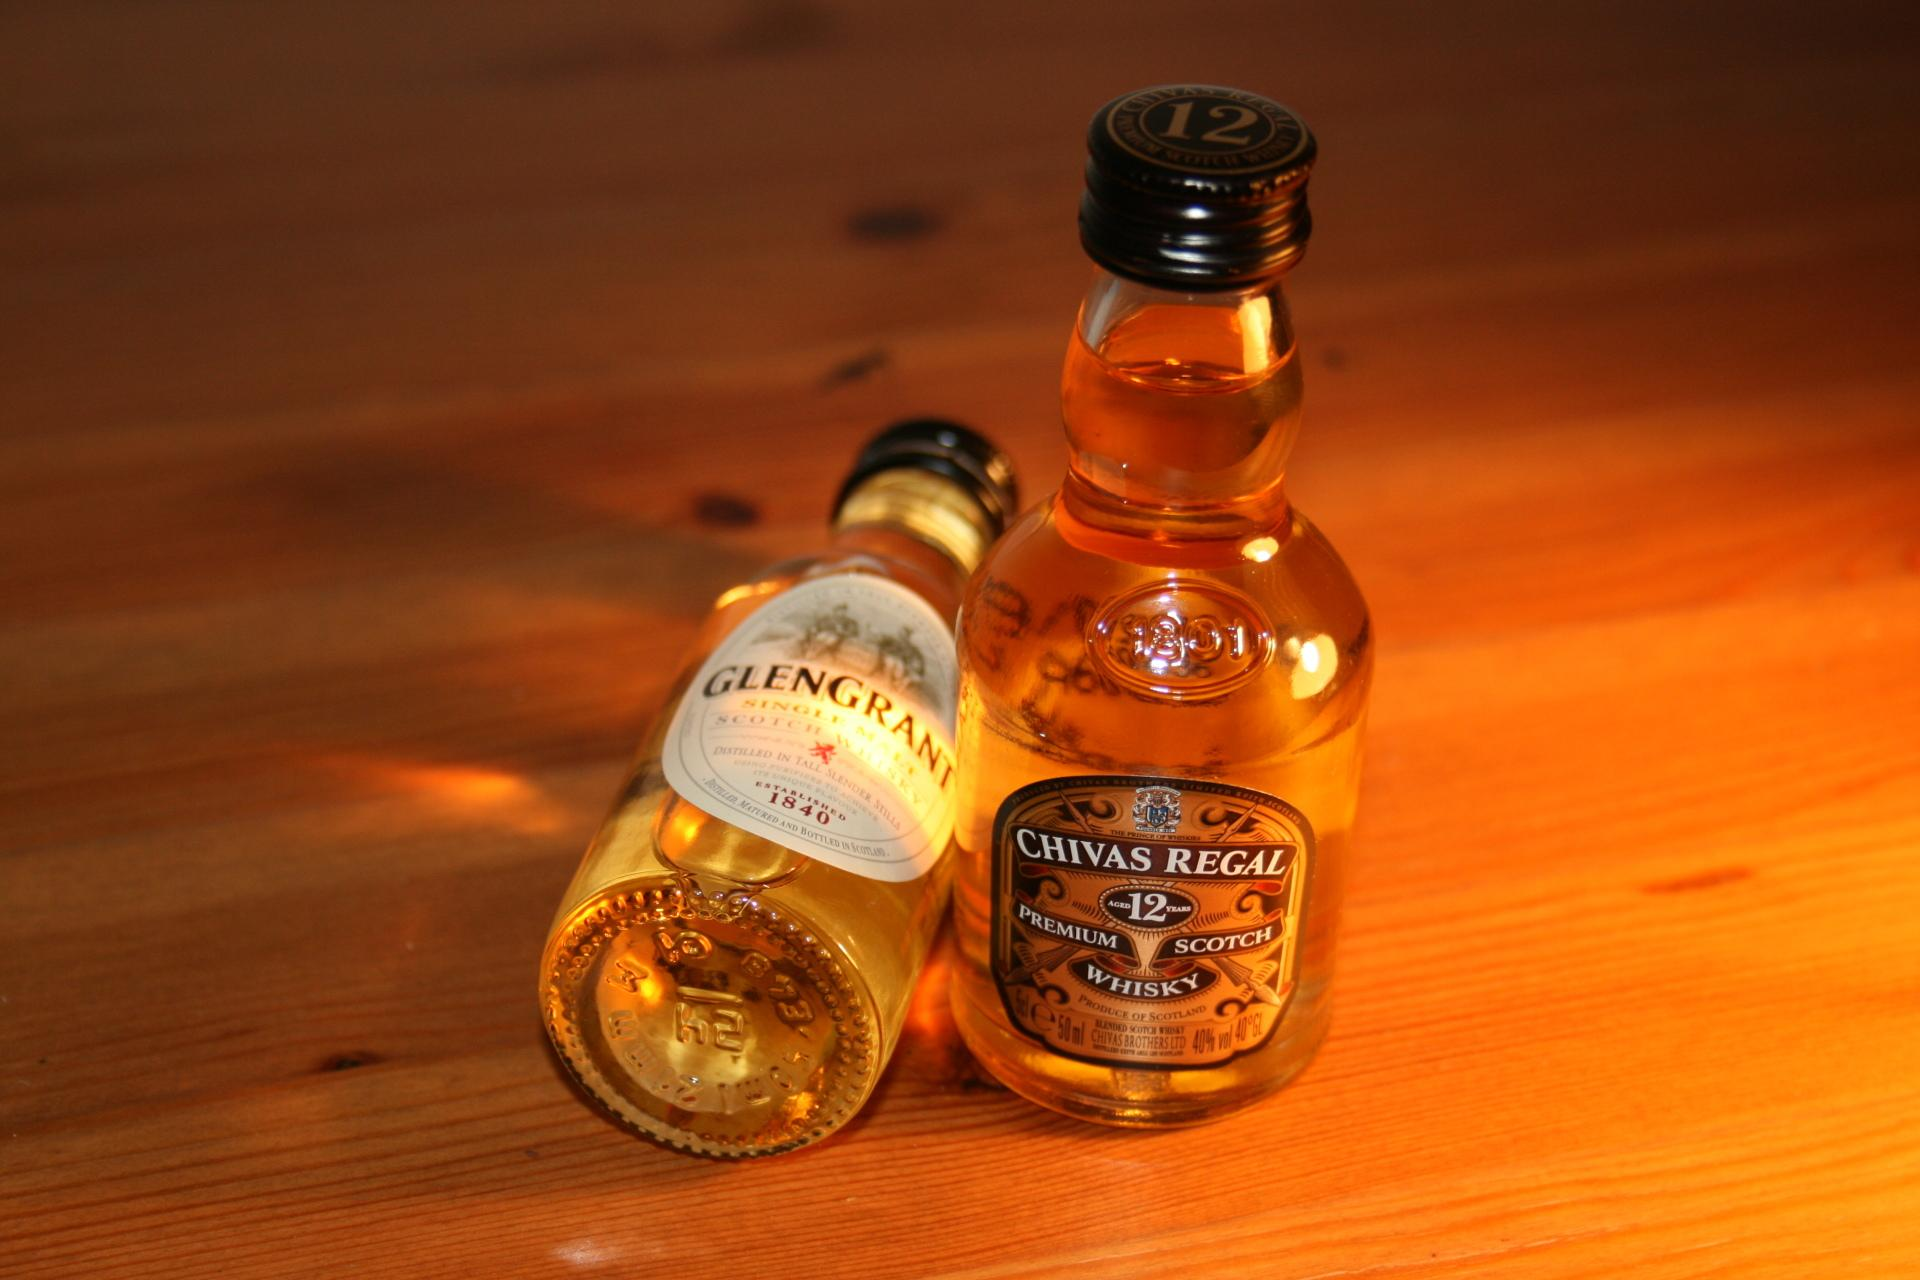 whisky 1080p wallpapers hd - photo #13